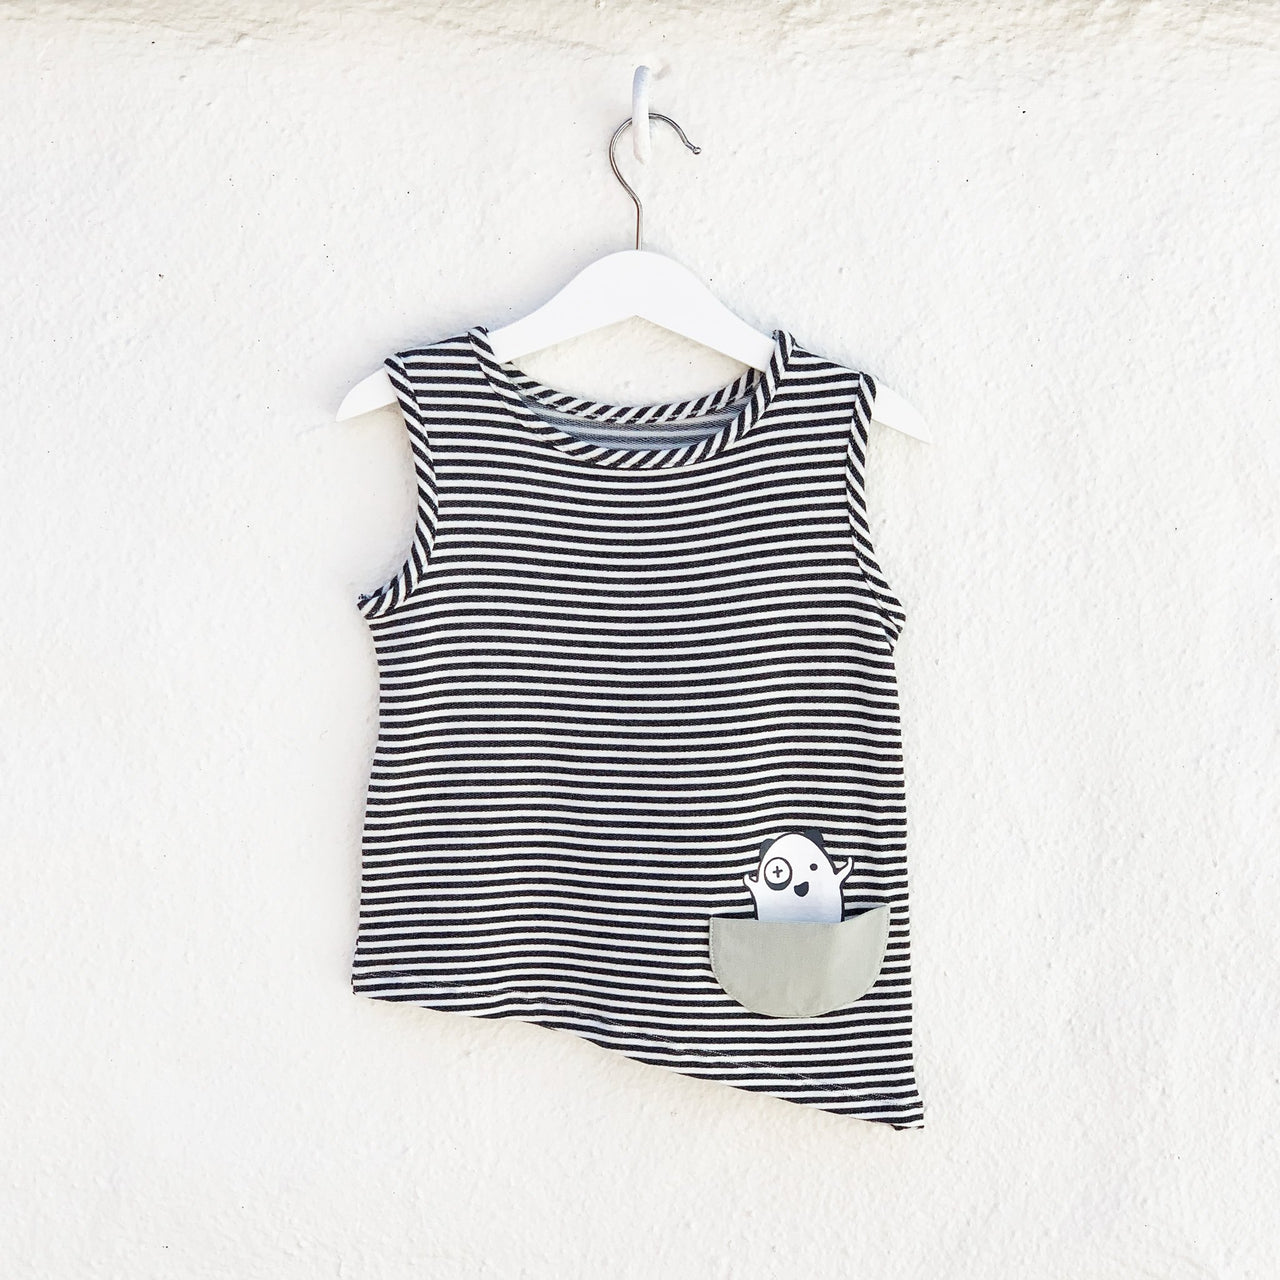 Kids & Babies - Asymmetric Tank - Black + White Stripes